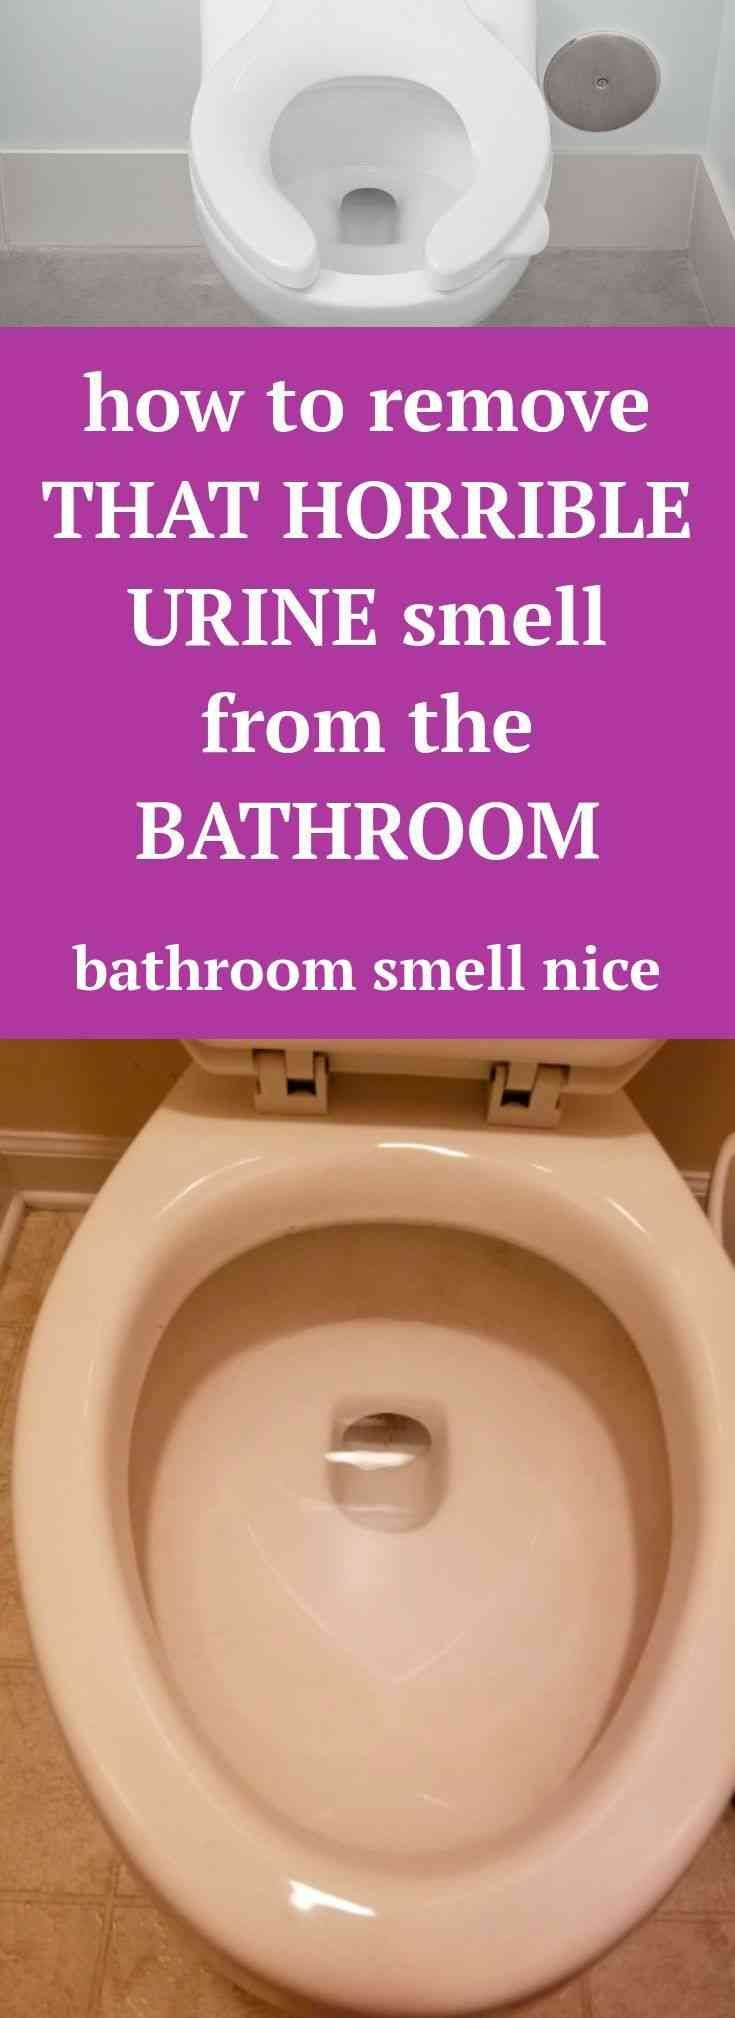 13 EASY WAYS TO GET RID OF BATHROOM SMELLS (With images